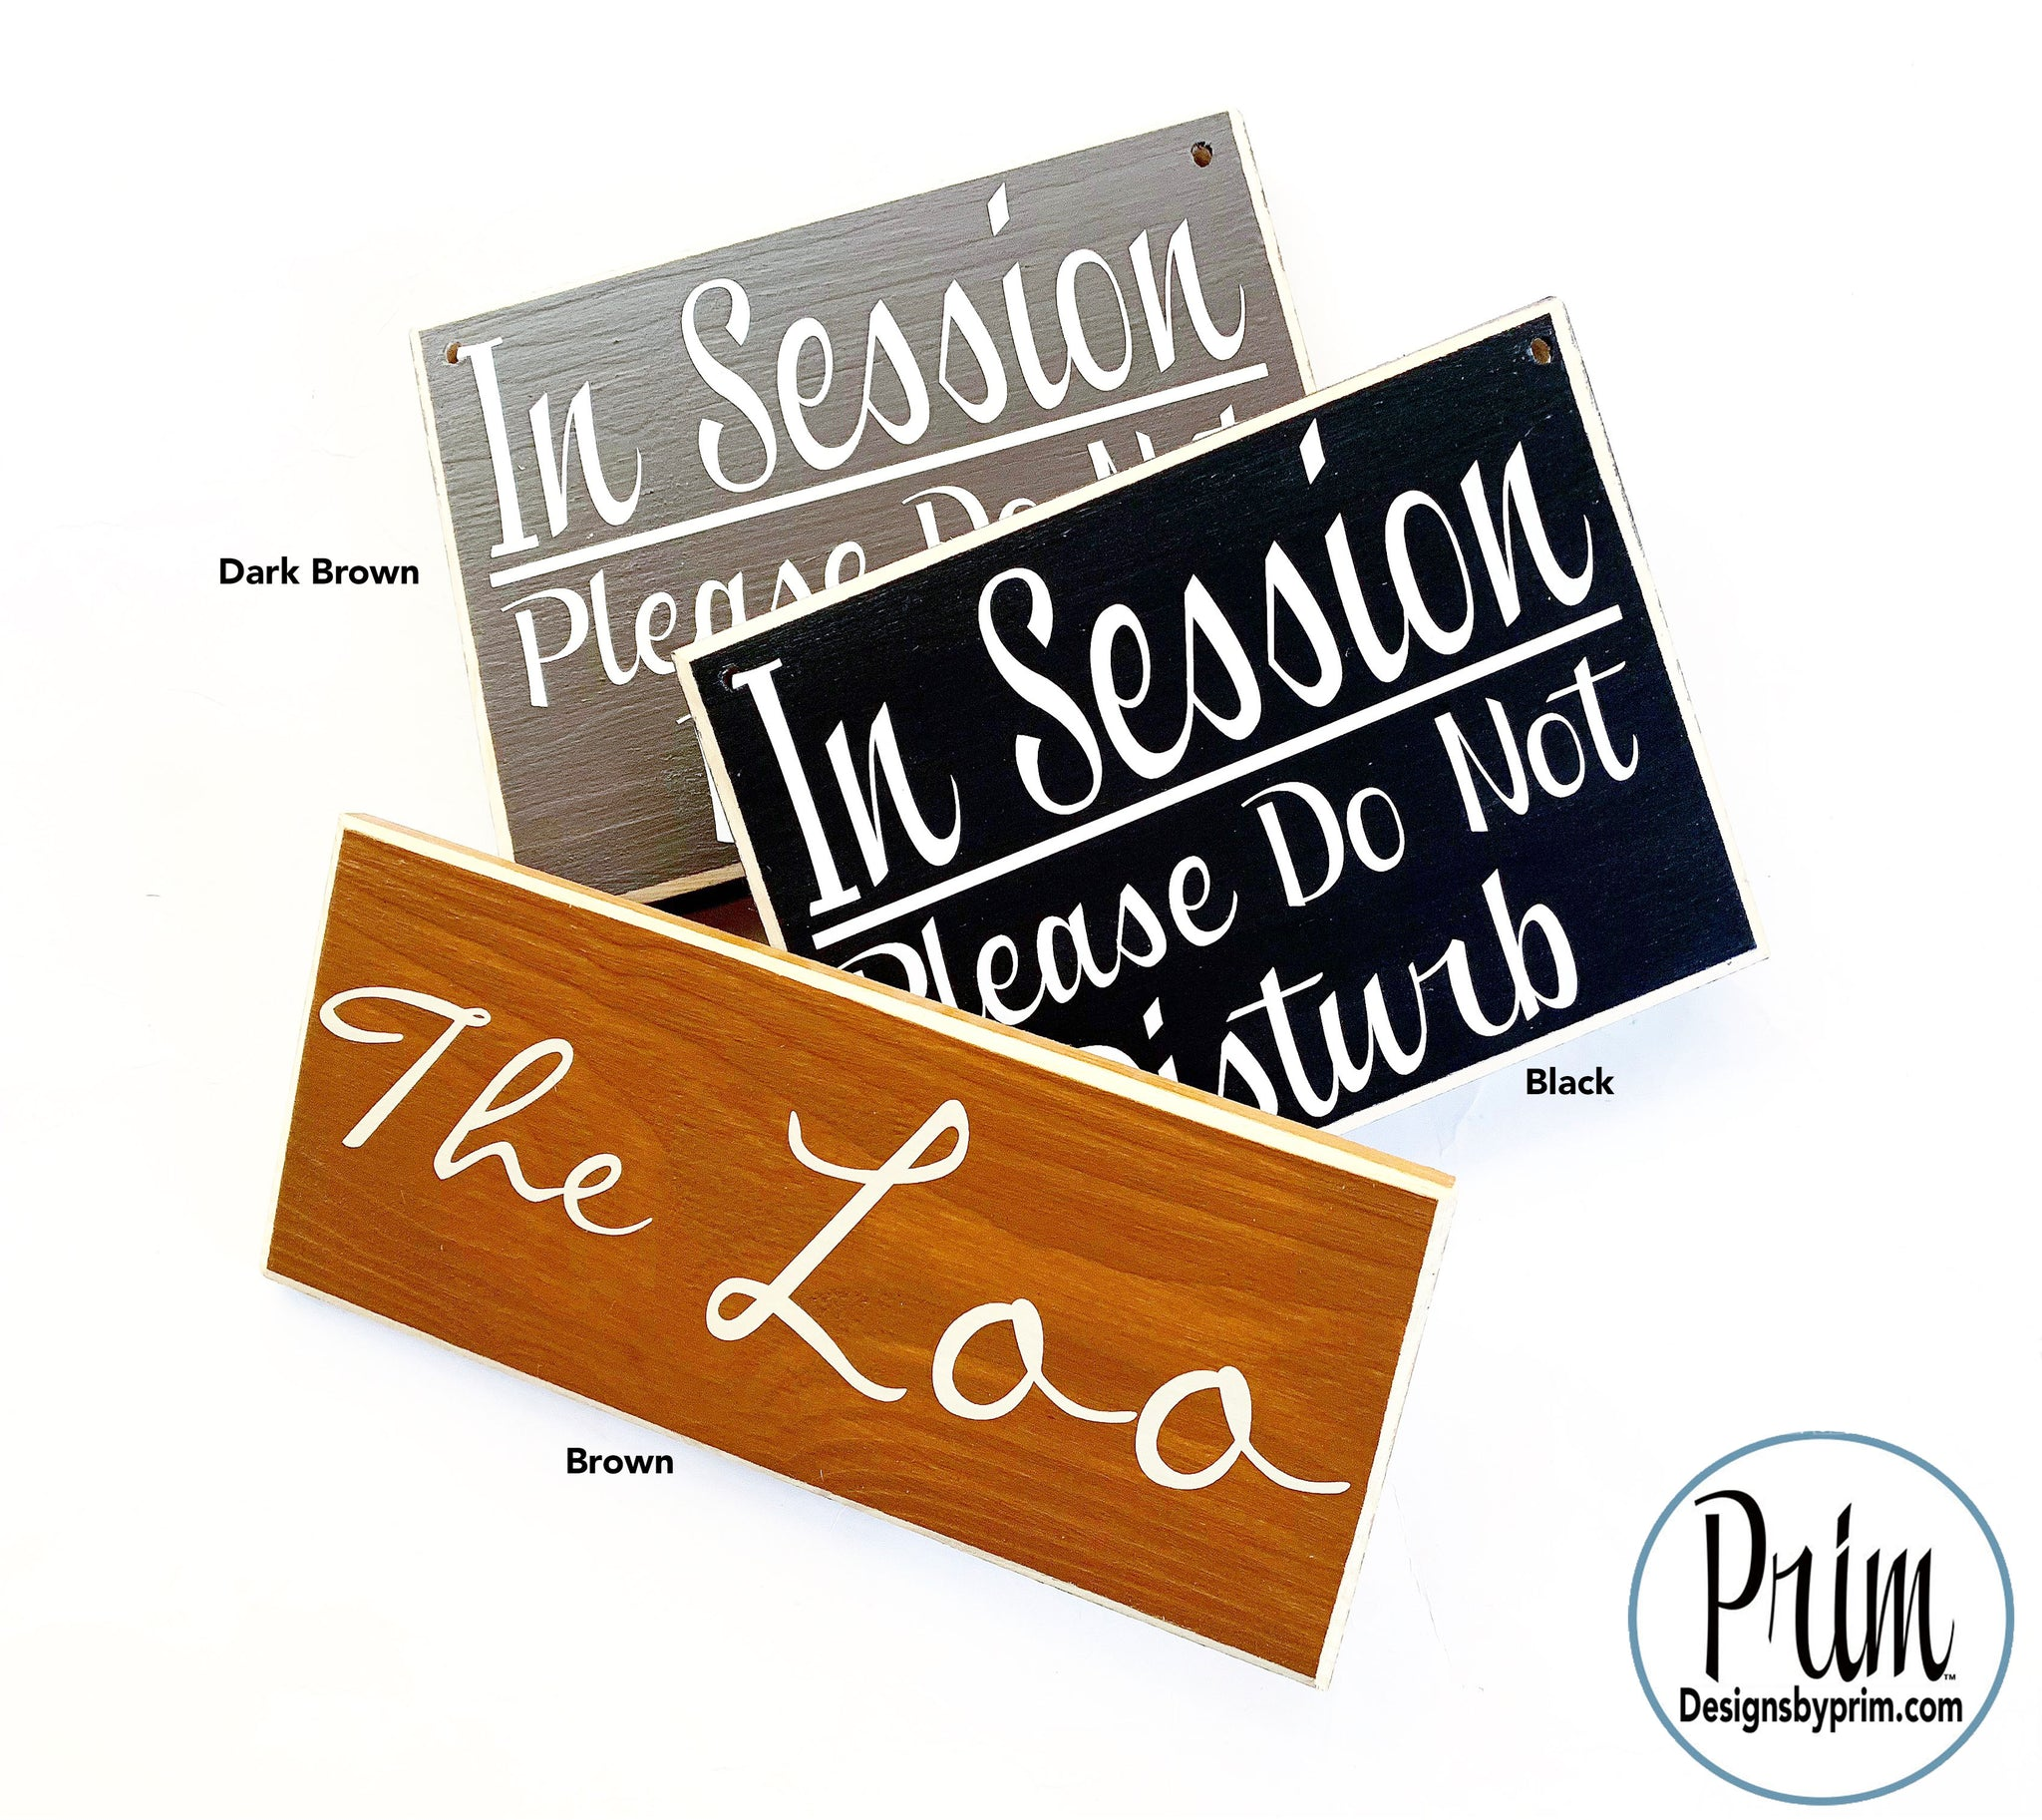 Meeting in Session Conference Massage Spa Salon Please Do Not Disturb Wall Door Plaque Hanger 8x6 Room in Use Custom Wood Sign